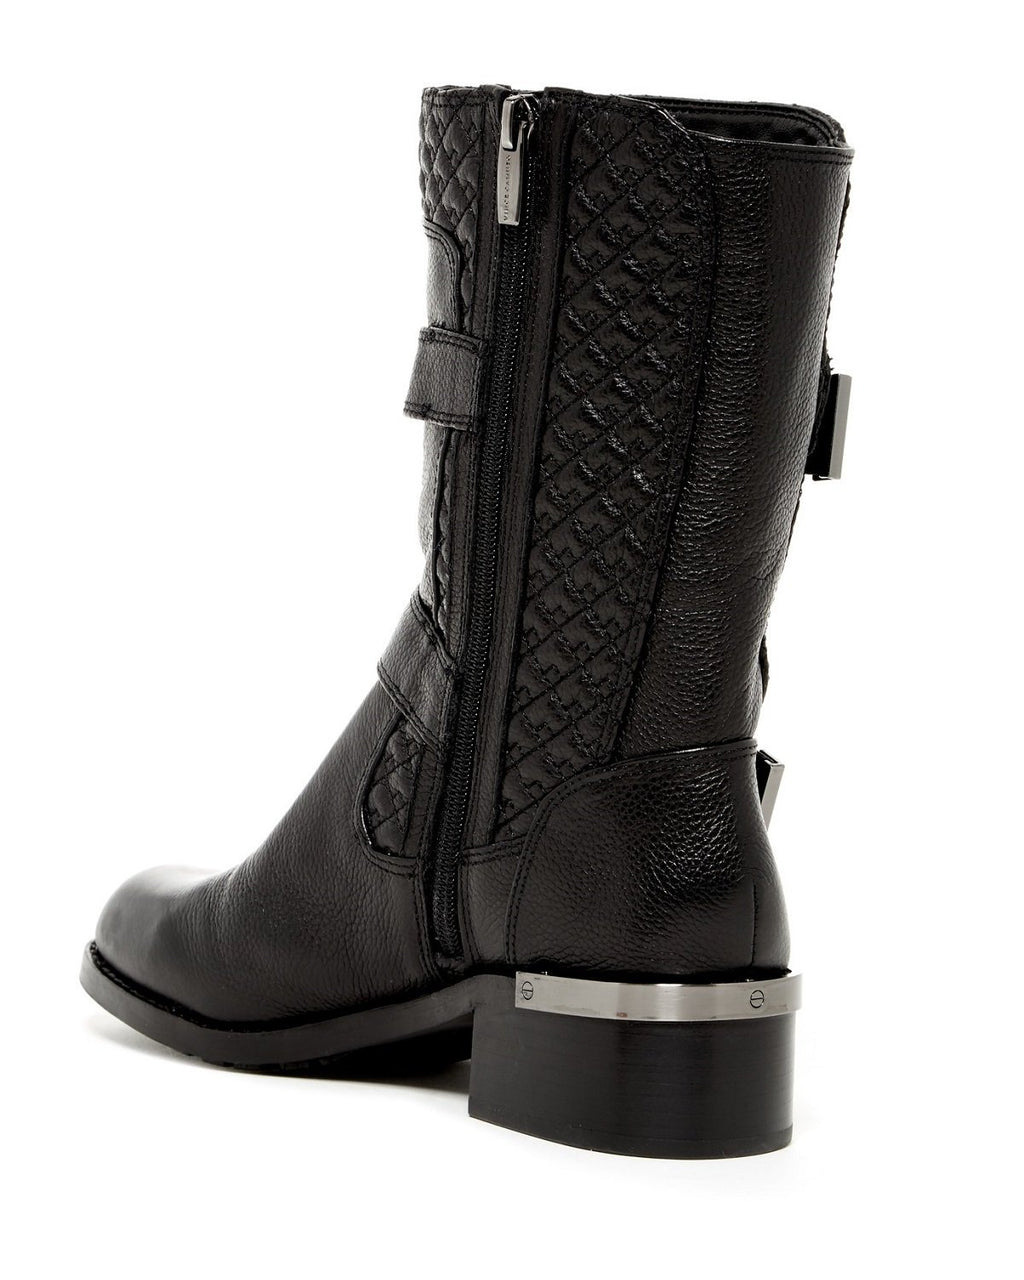 Vince Camuto Welton Women Black Mid Calf Boot